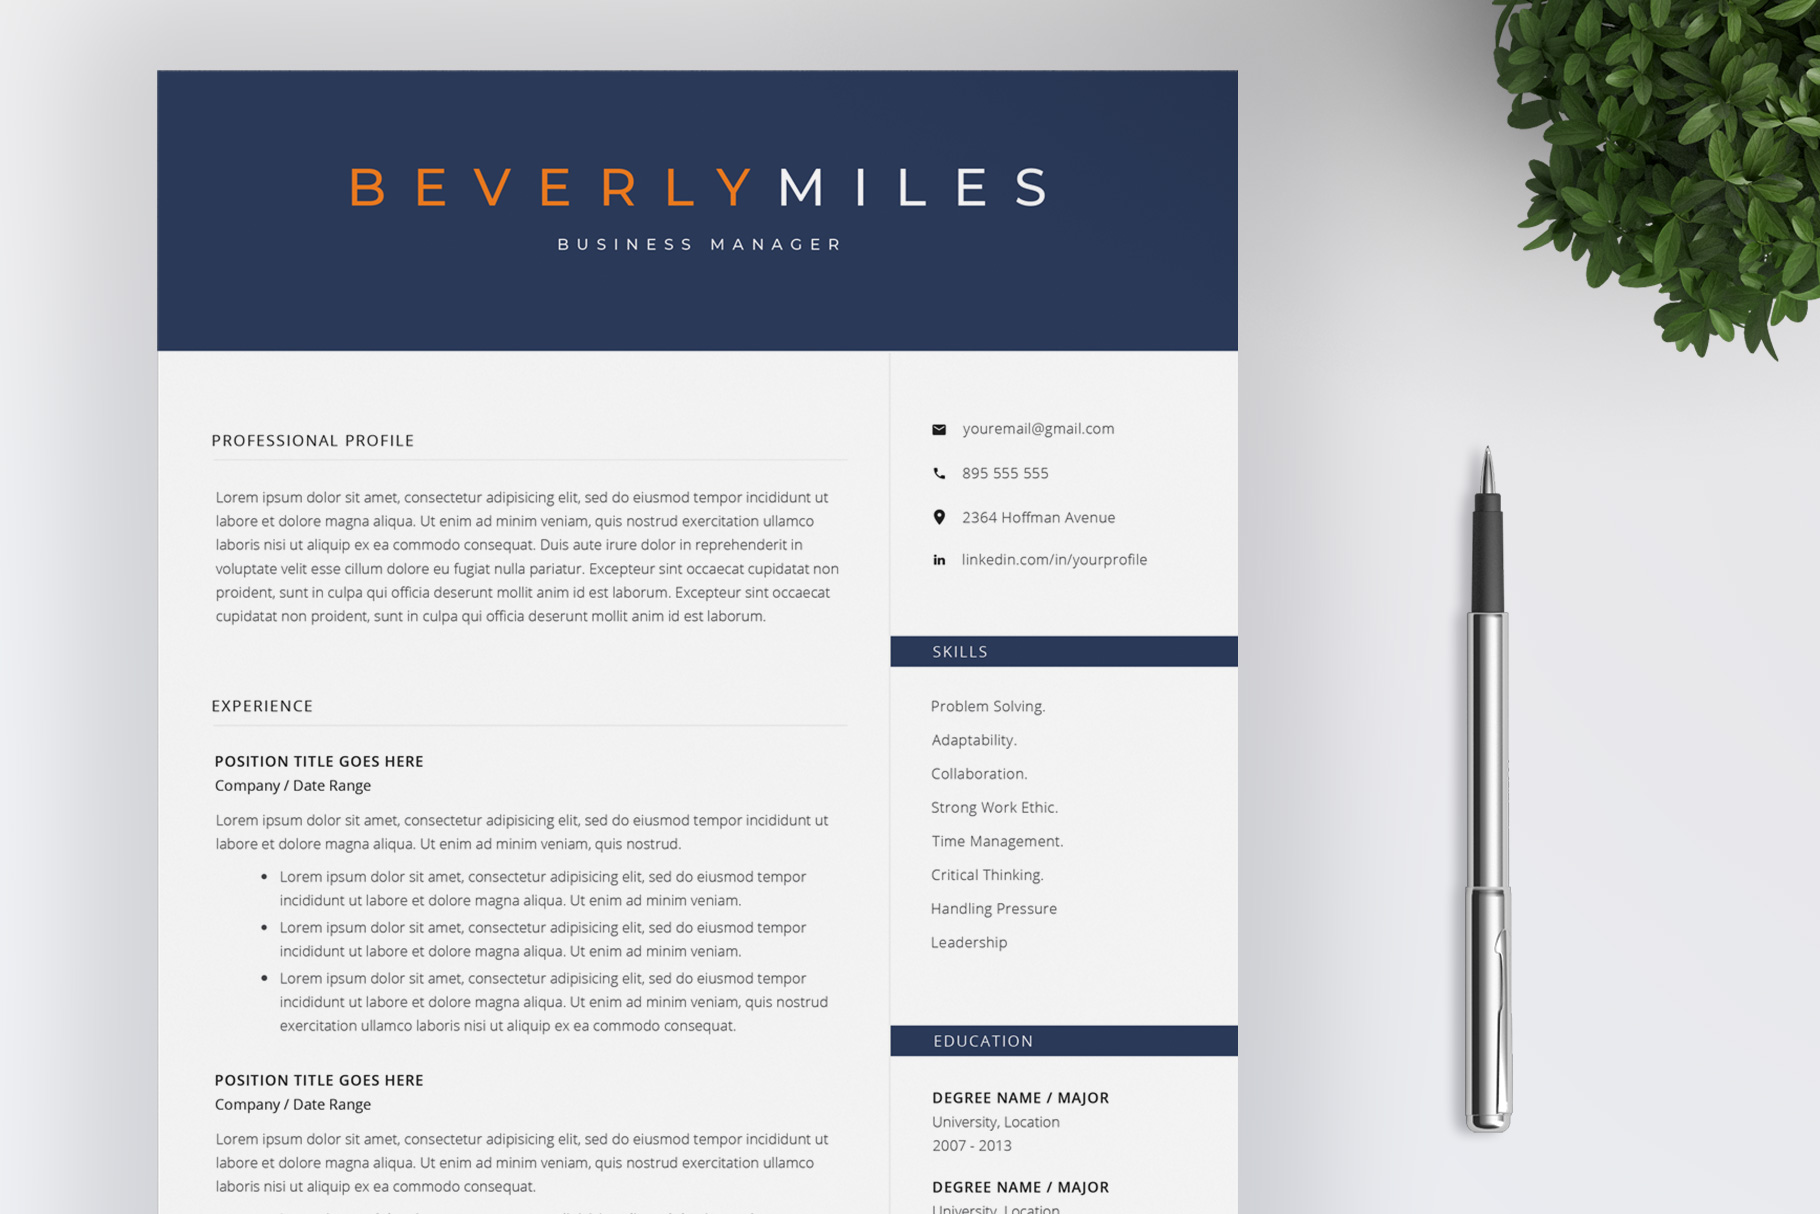 Resume Template and Cover Letter   CV template example image 1